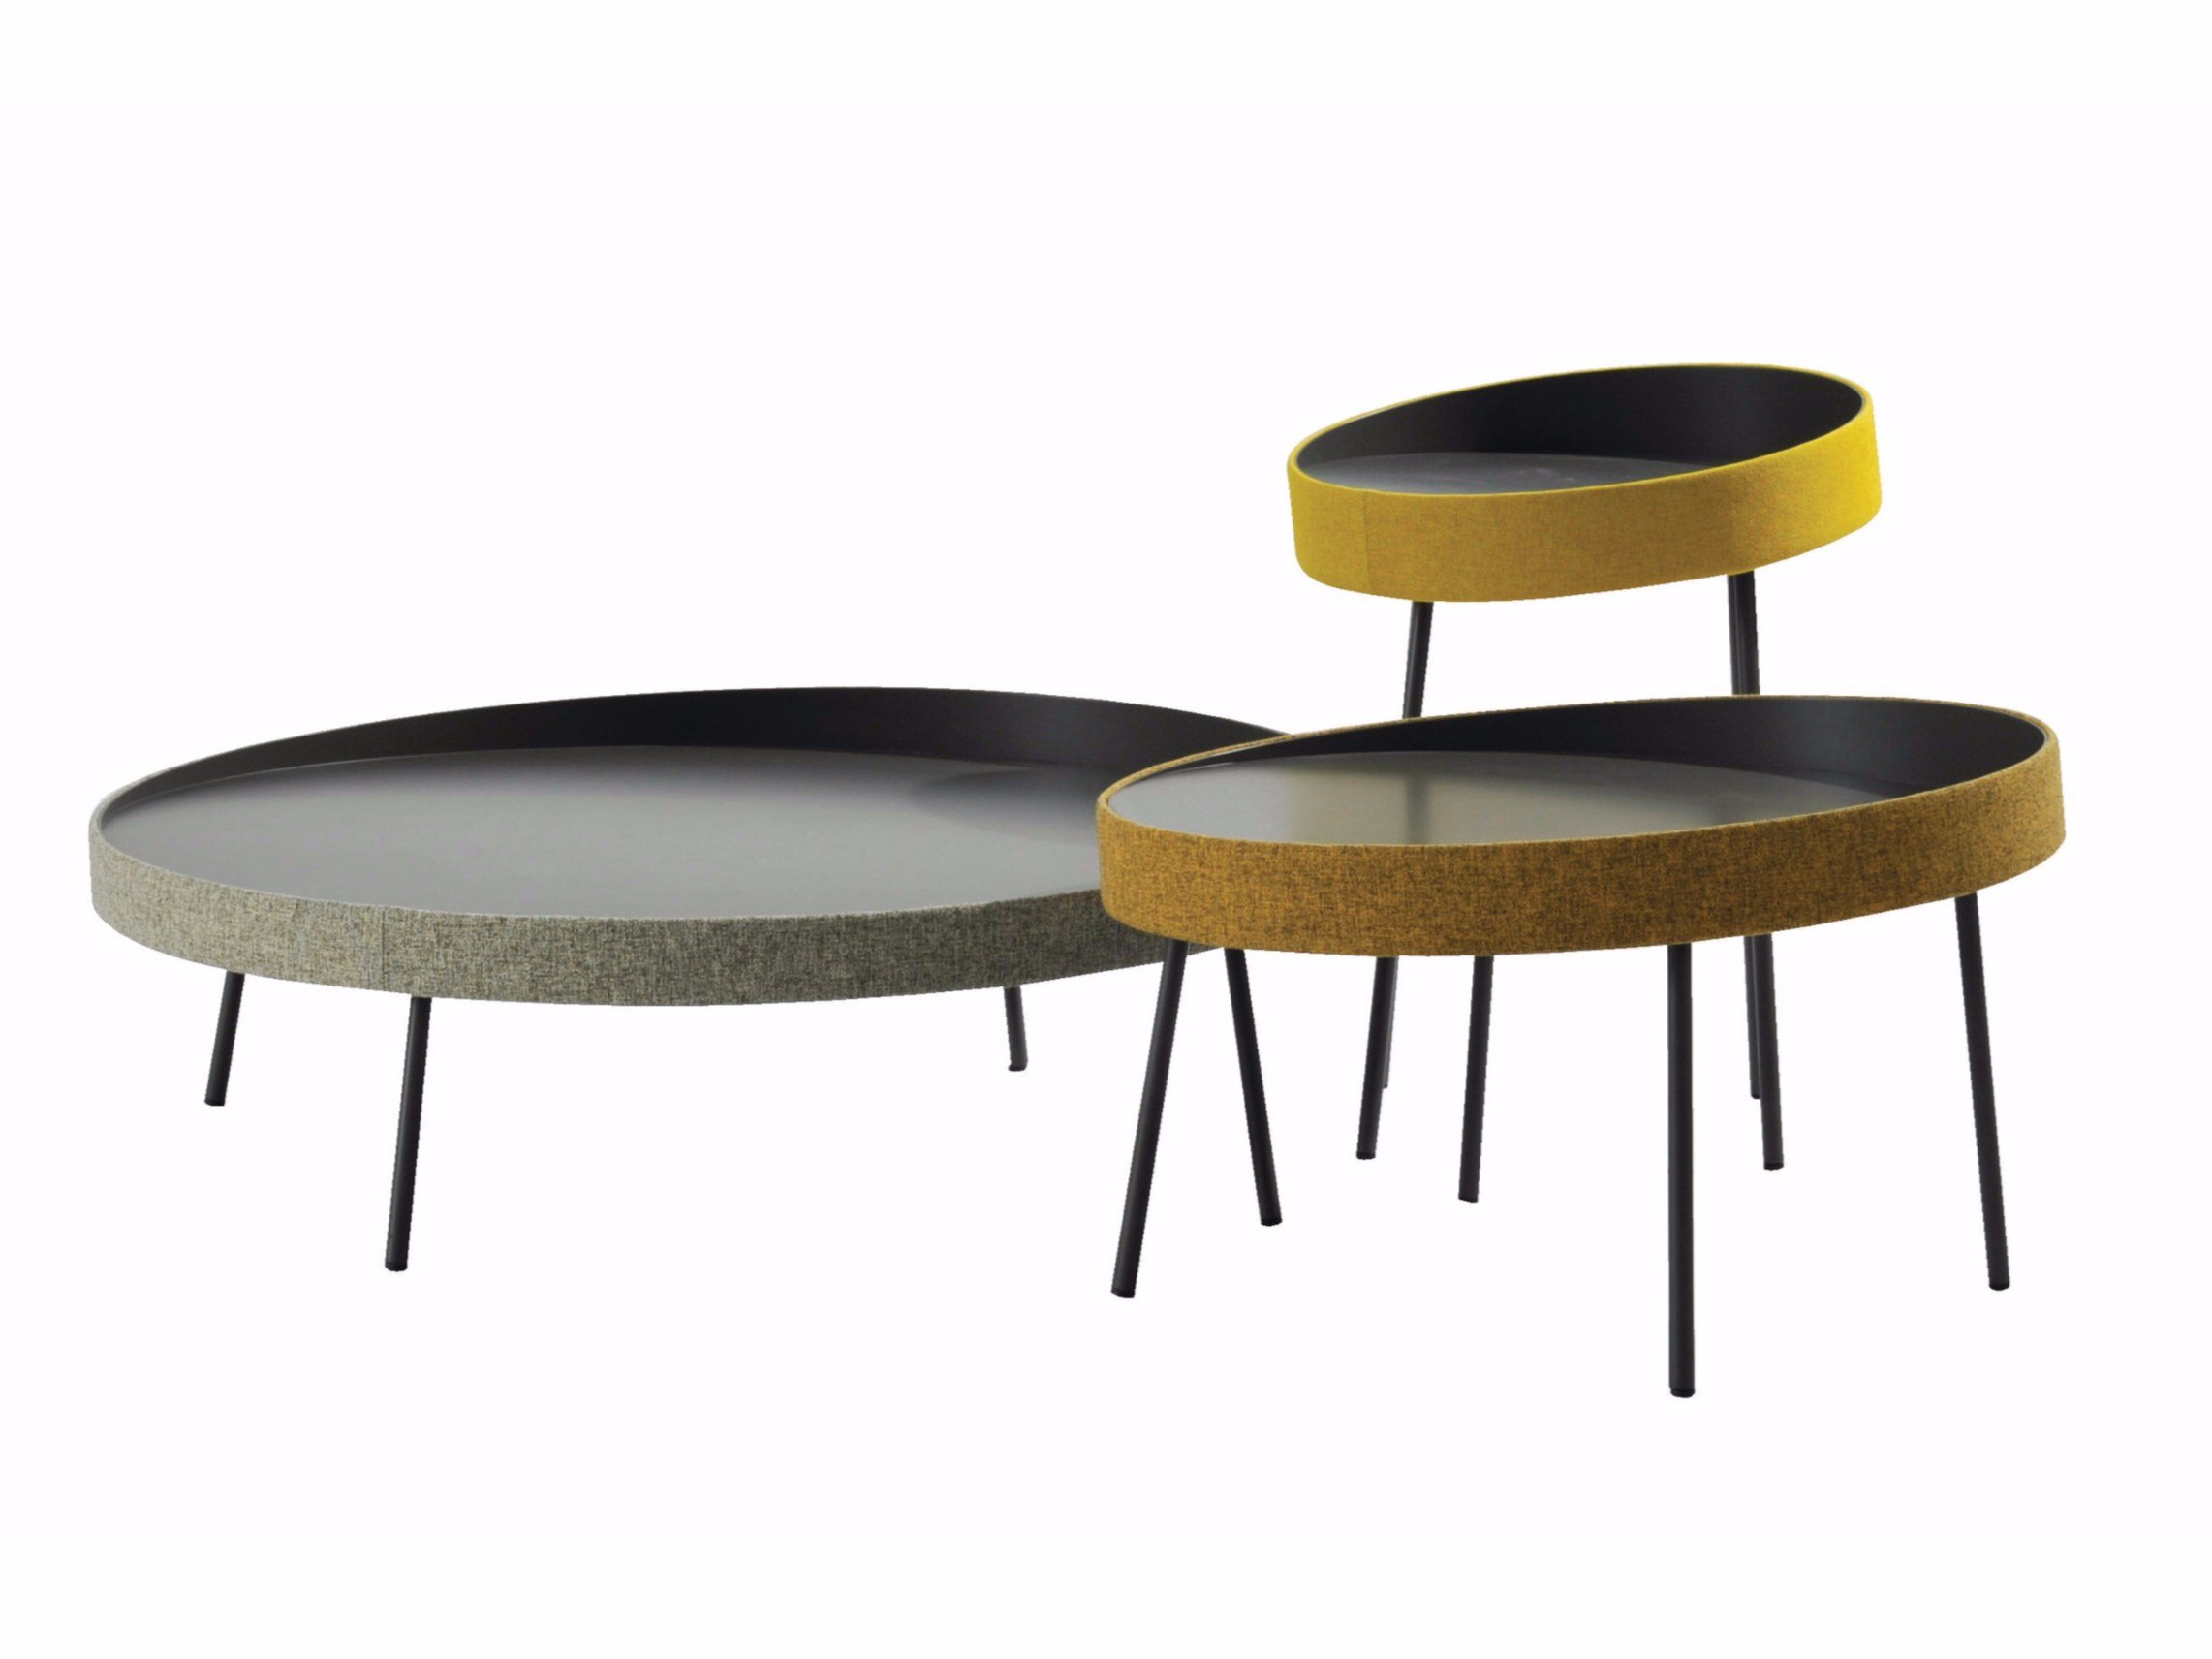 Round aluminium and wood coffee table BOW By ROCHE BOBOIS design